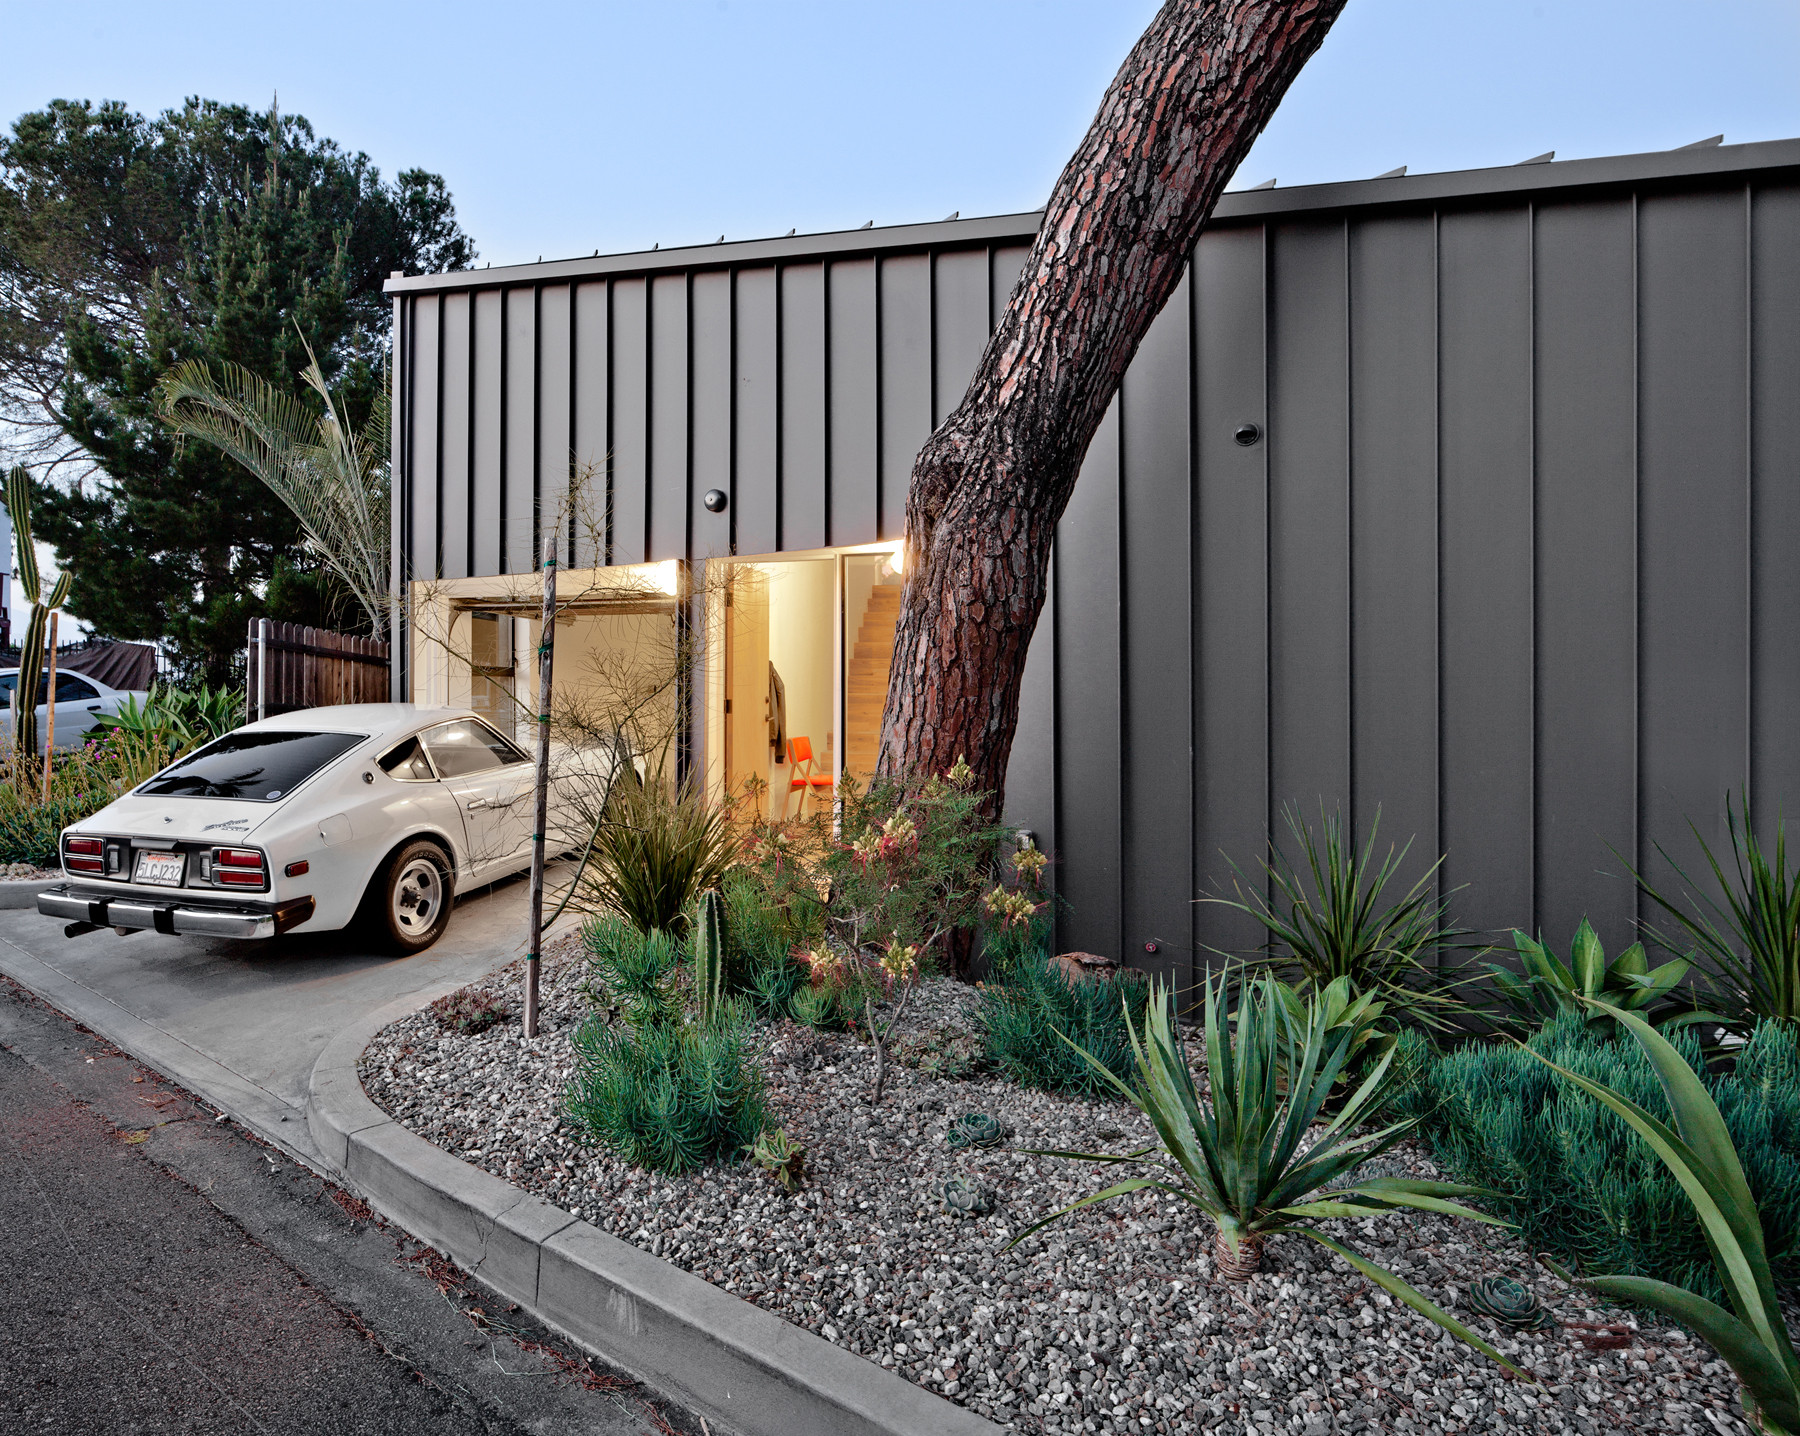 Single-space Living Area Helps Compact Home Feel